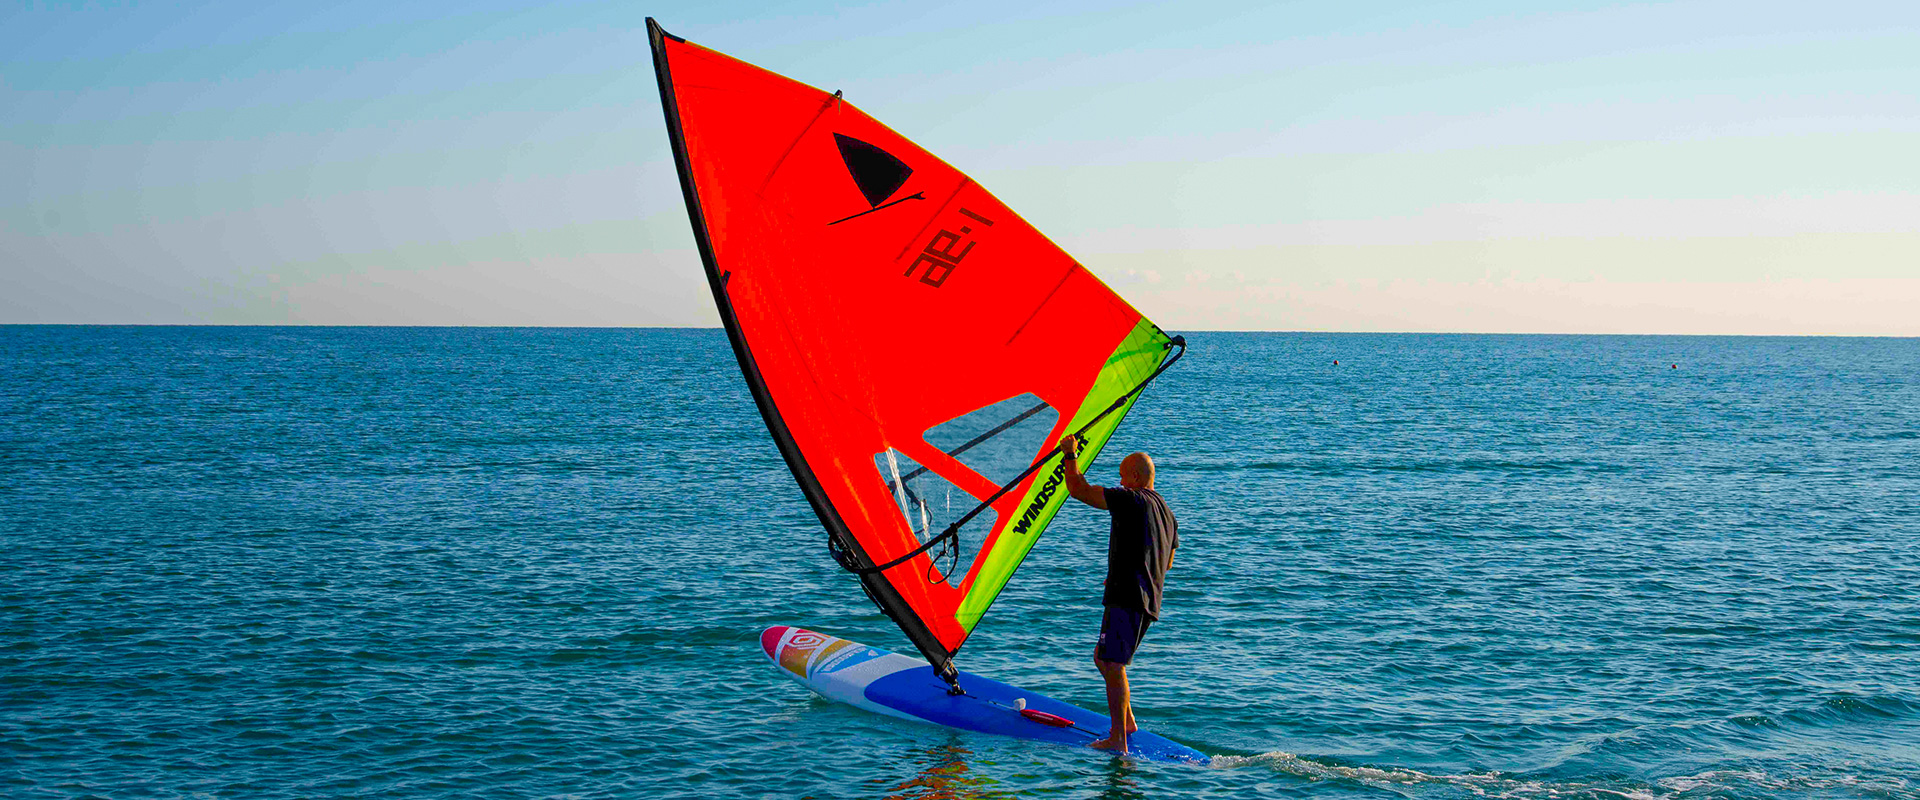 WINDSURFER LT by i-99 Boards - Windsurfer Class